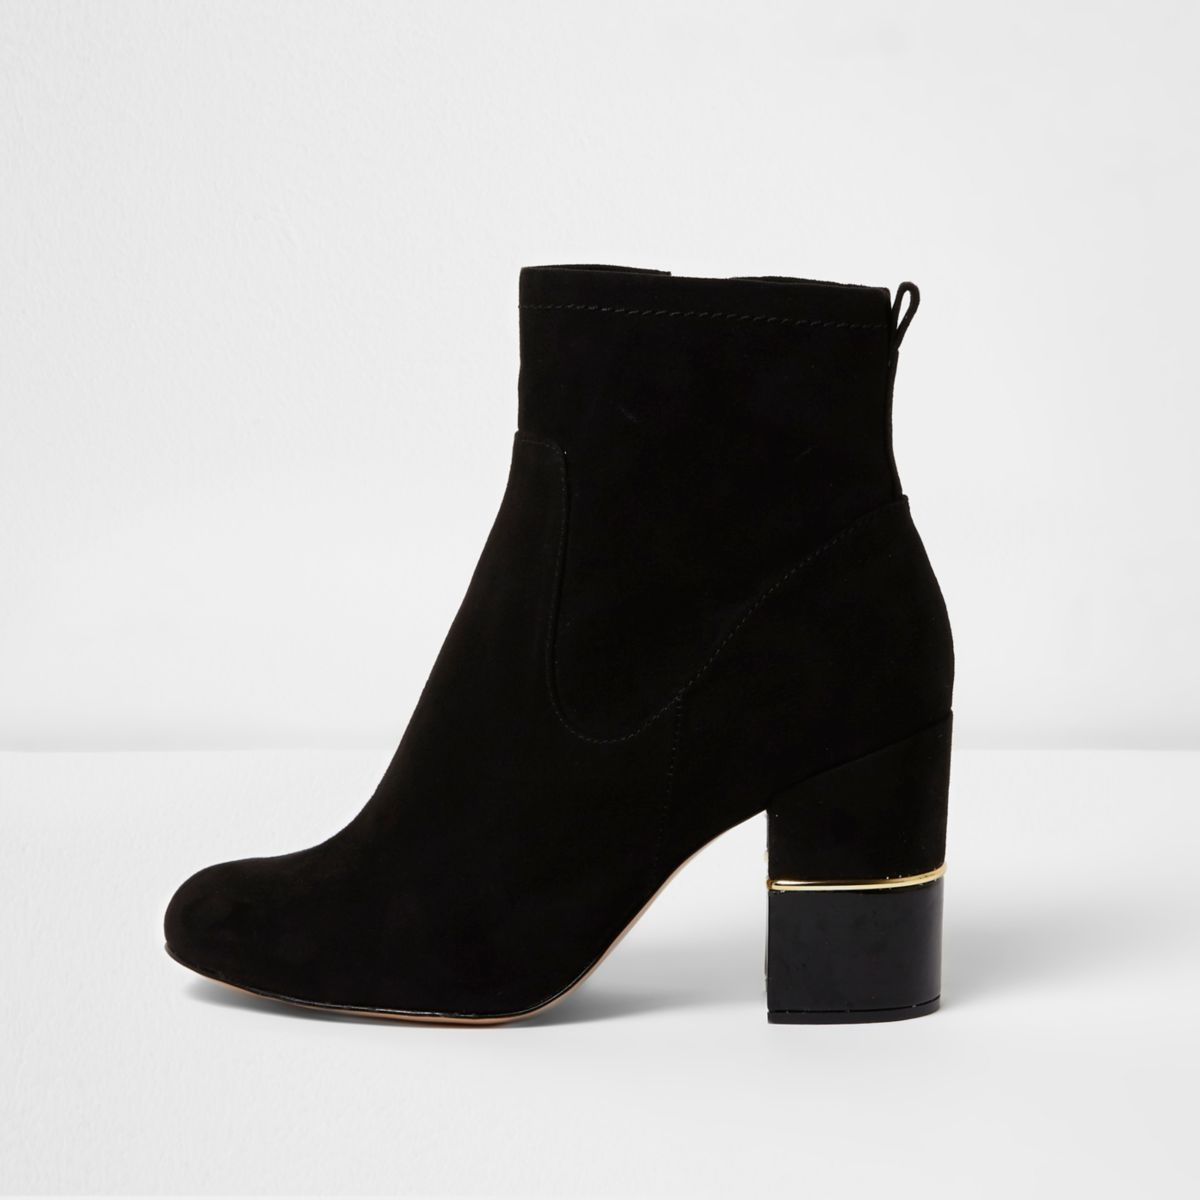 Black block heel gold trim ankle boots - Shoes & Boots - Sale - women